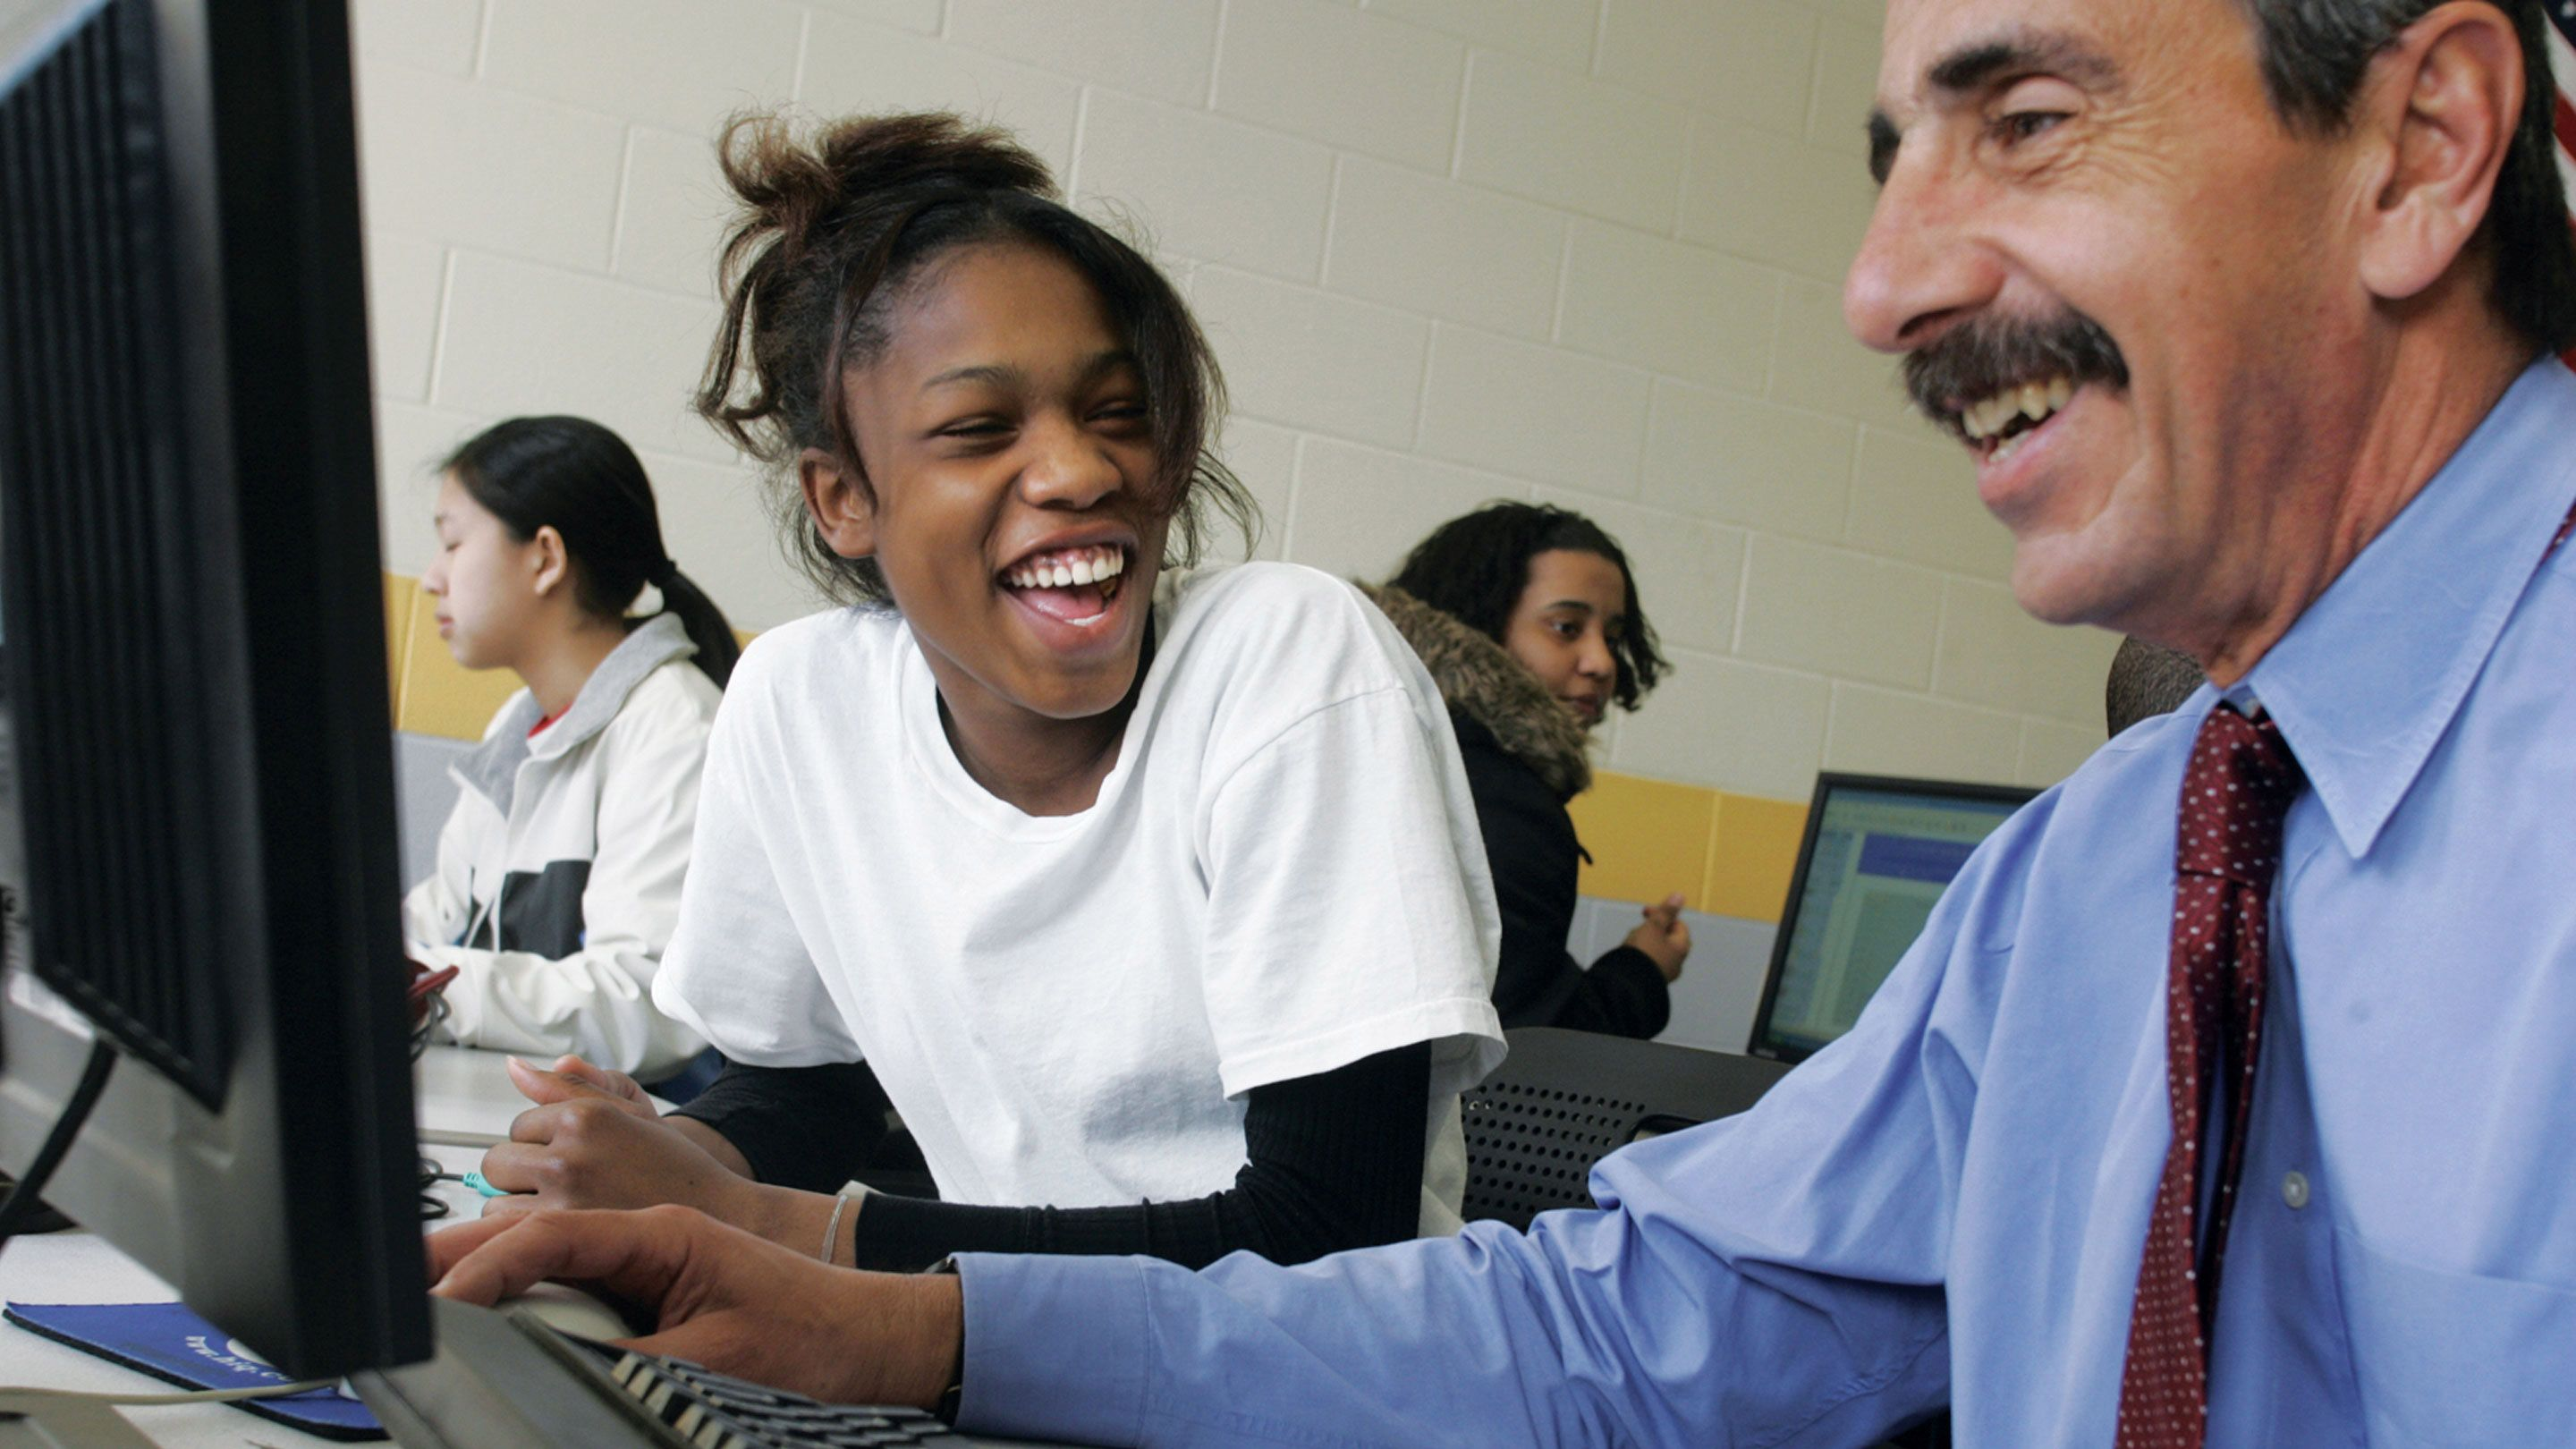 A teacher and student laugh while working at a computer together.